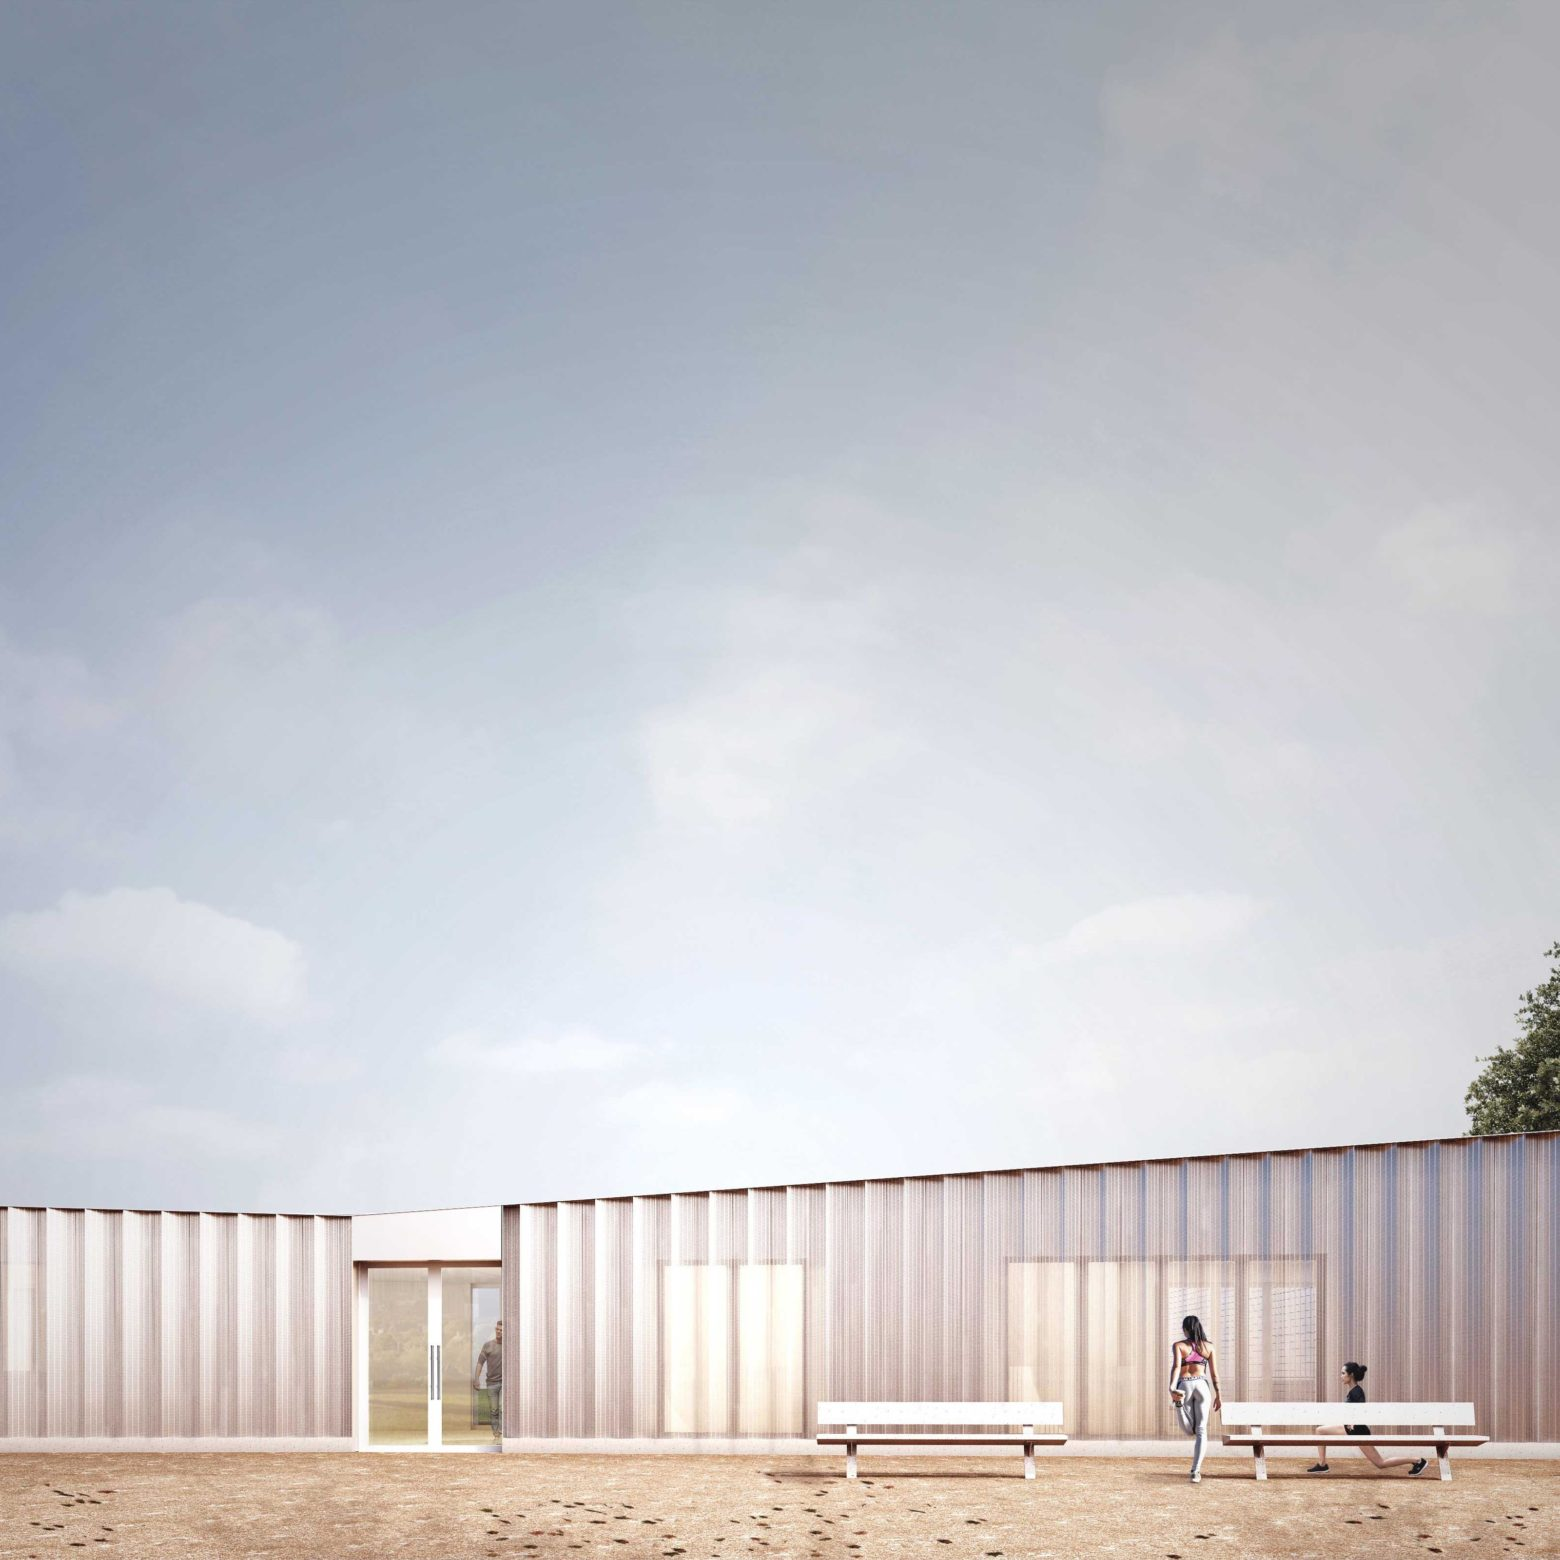 Planning submitted for new sports centre in Burgess Park